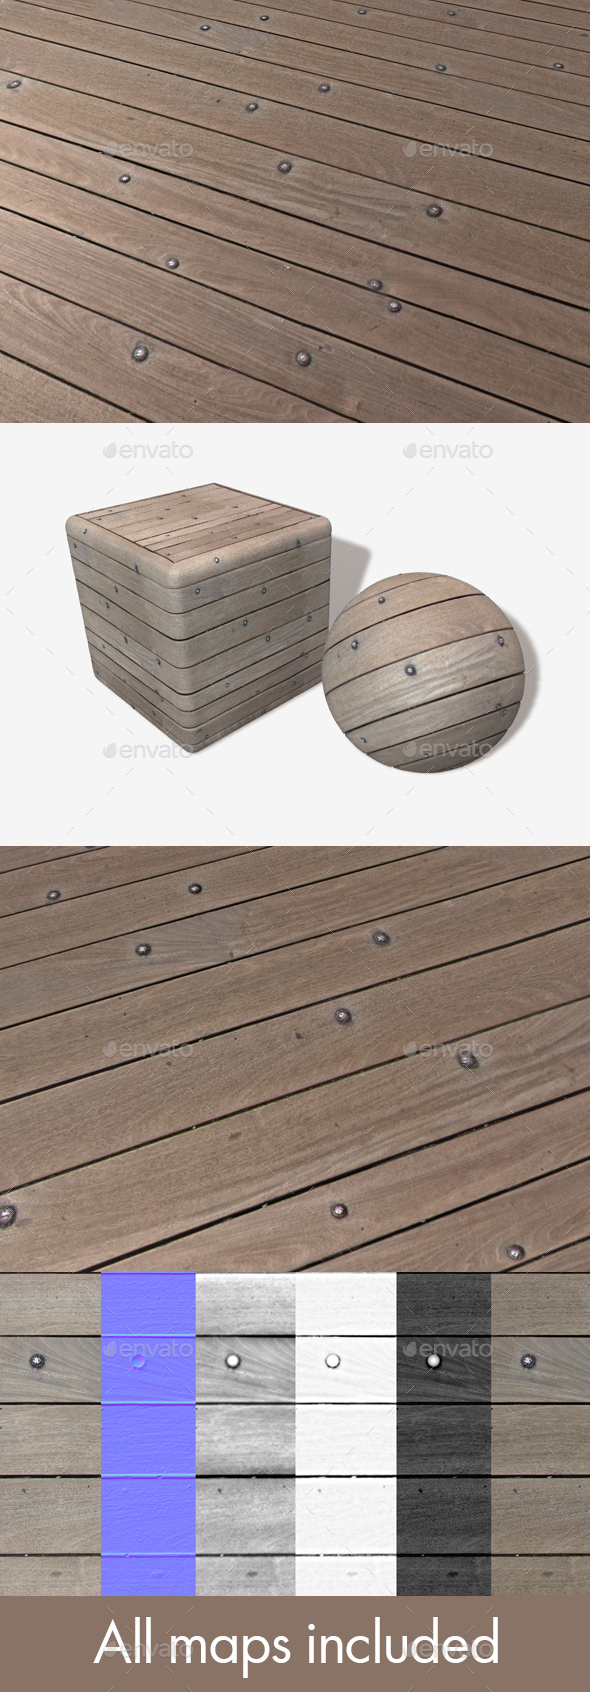 Uneven Bolted Floorboards Seamless Texture - 3DOcean Item for Sale